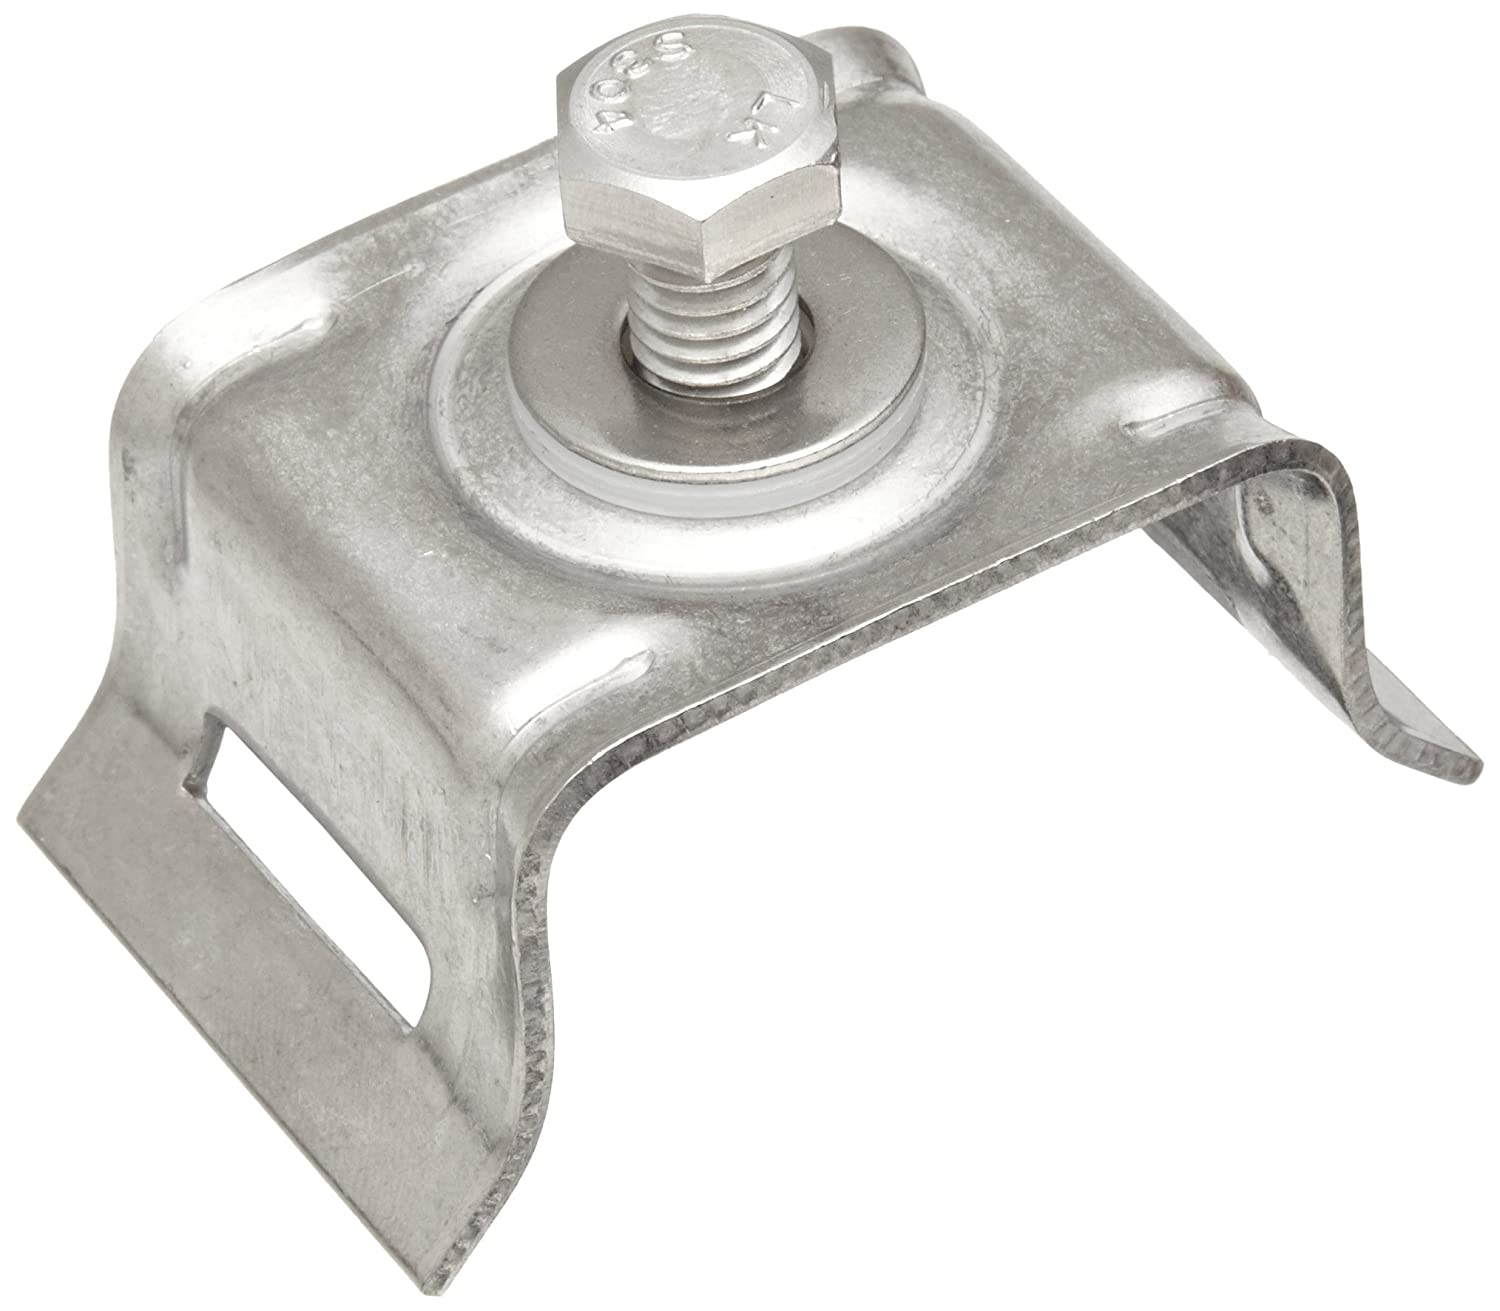 Uniweld 70044 Swage Punch for 1//2-Inch OD Copper Tubing